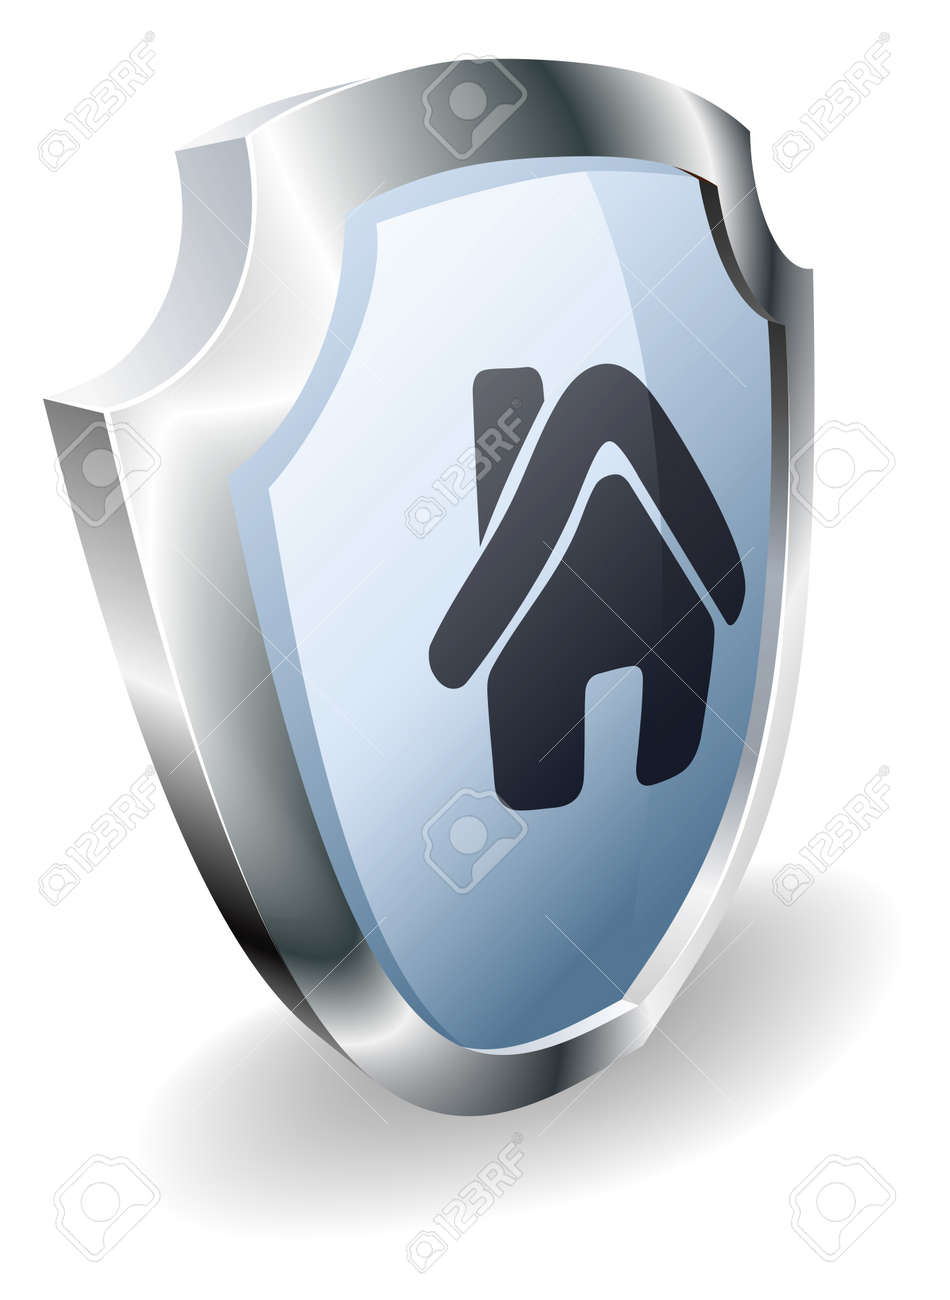 Shield House shield with house icon on indicating it is protected, safe